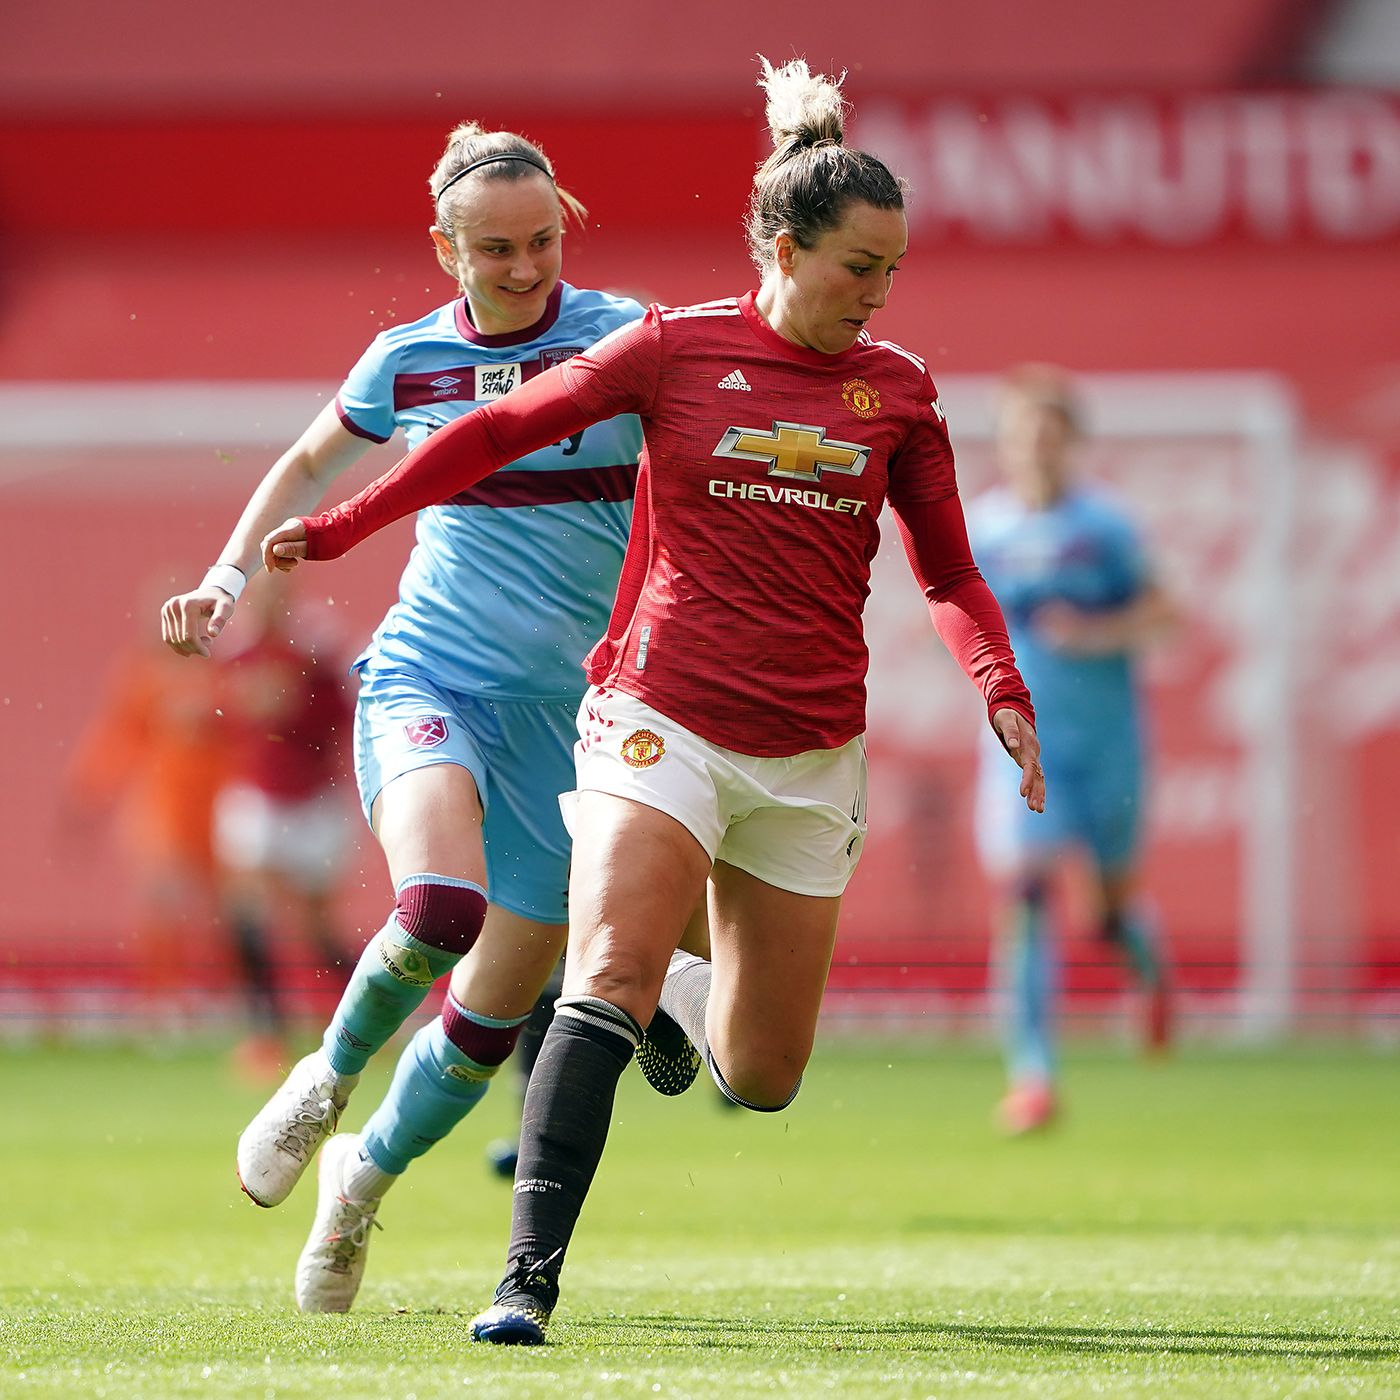 The Women's Football Show: Amy Turner's Man Utd ambitions, Karen Bardsley's injury nightmare and Northern Ireland's attempt to make history